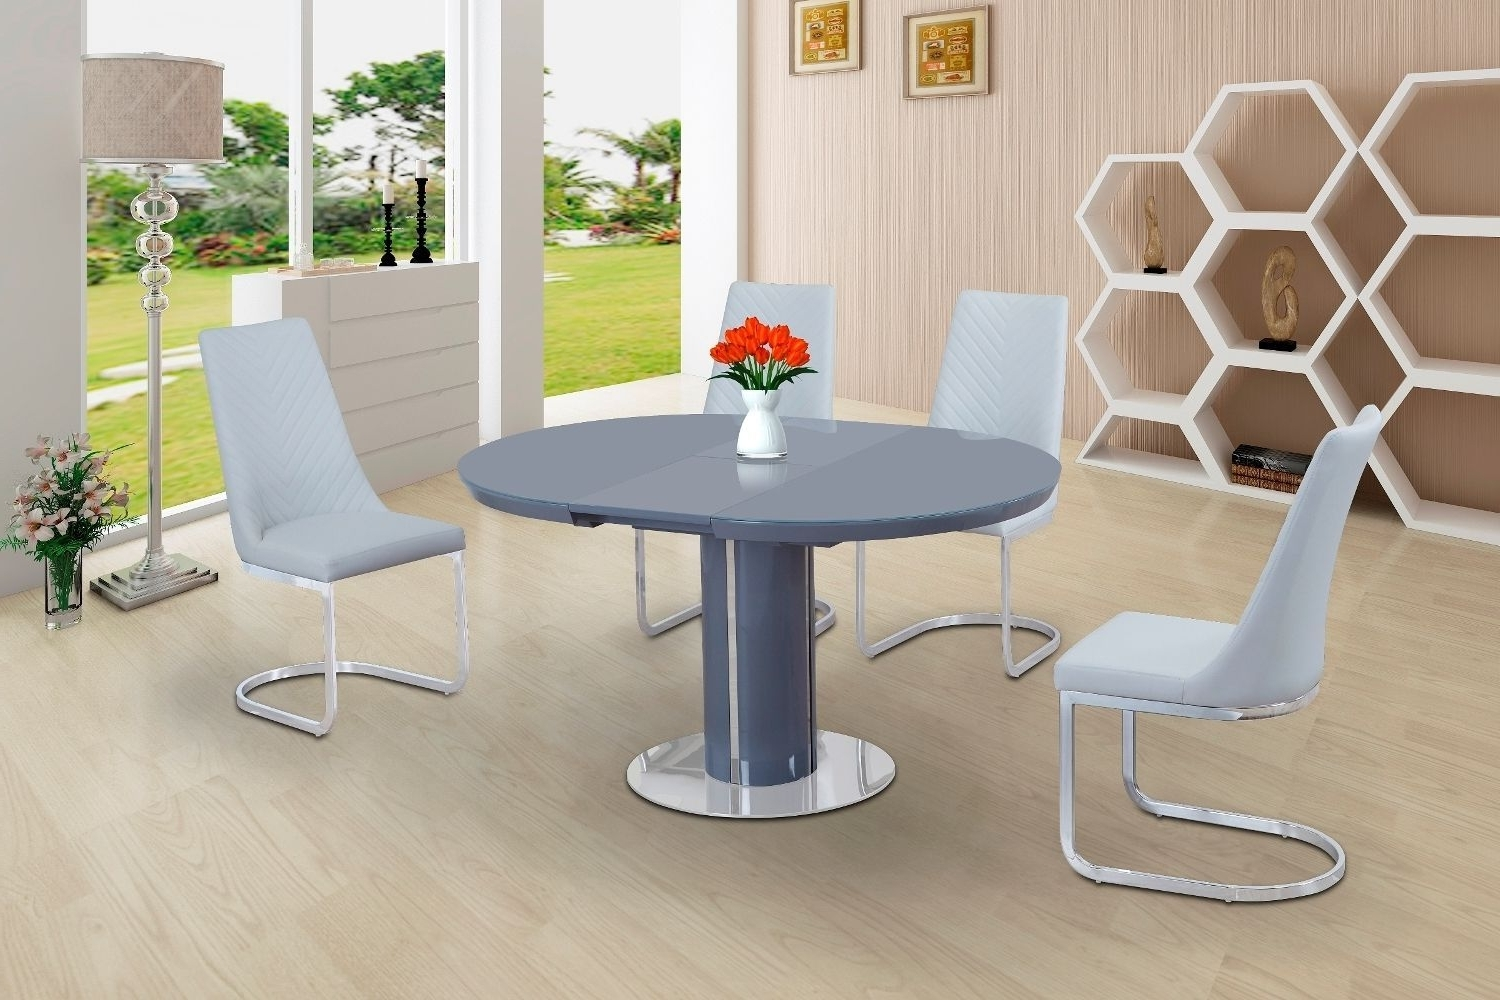 2017 Eclipse Round Oval Gloss & Glass Extending 110 To 145 Cm Dining With Extendable Round Dining Tables (View 17 of 25)